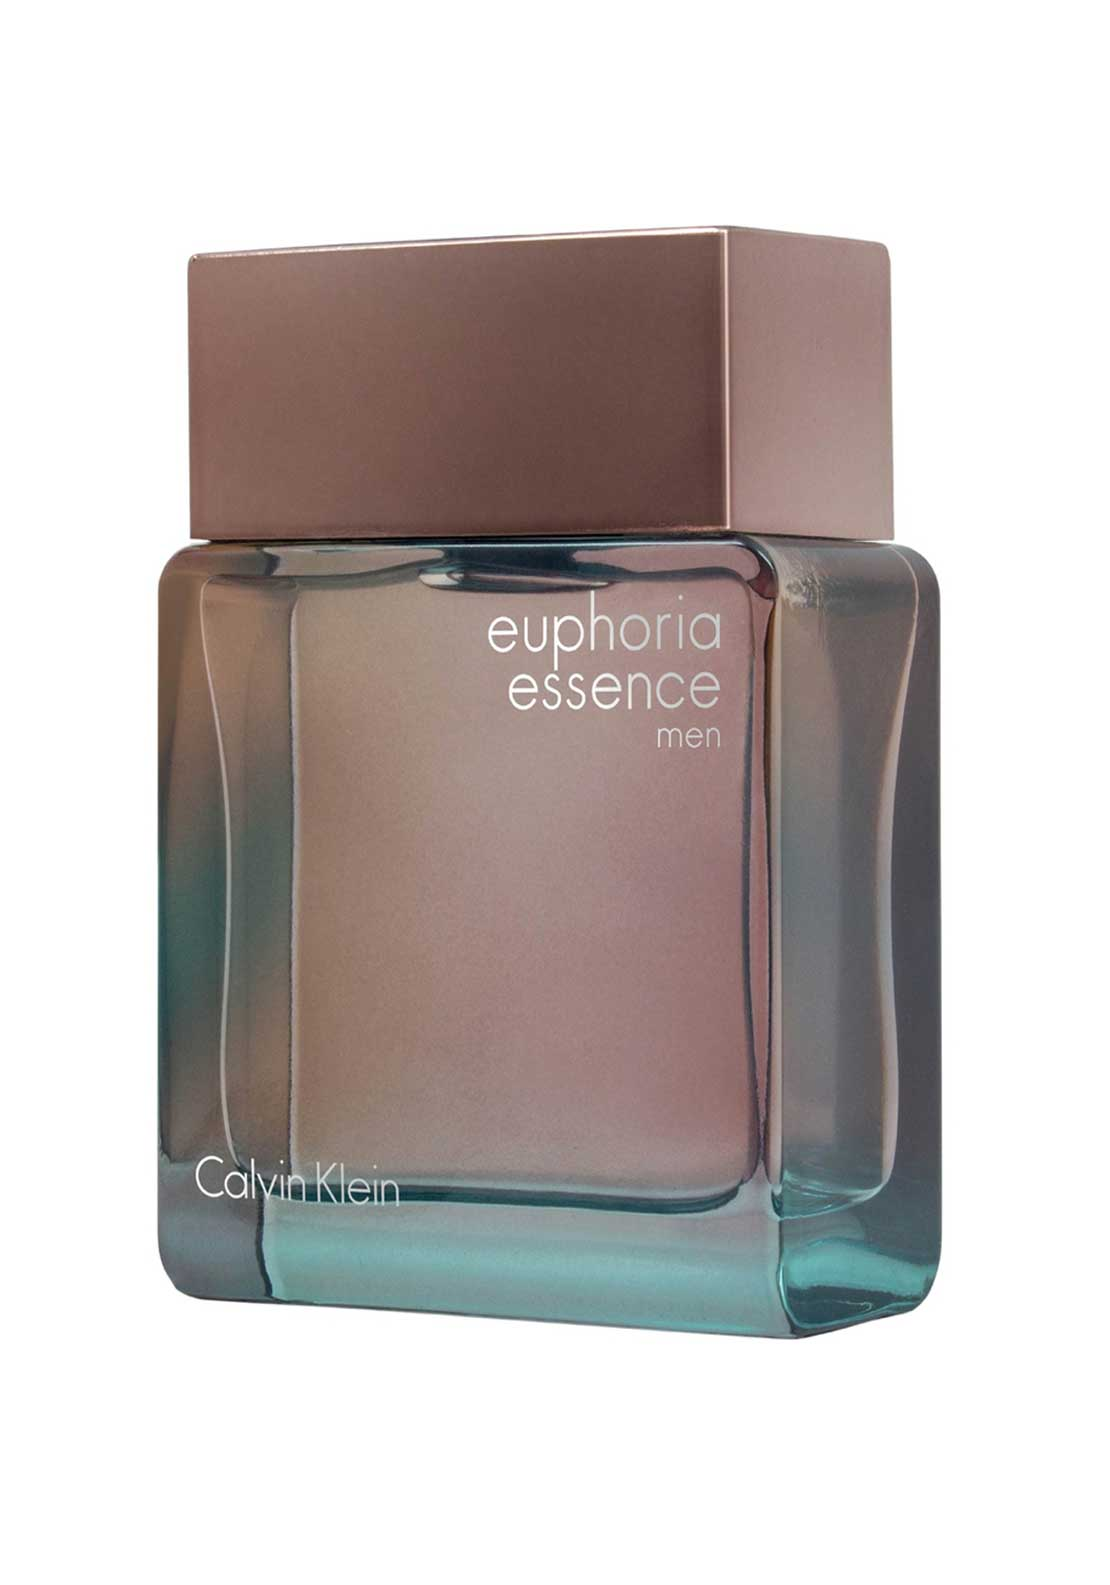 Calvin Klein Euphoria Essence Men Eau de Toilette Spray, 50ml